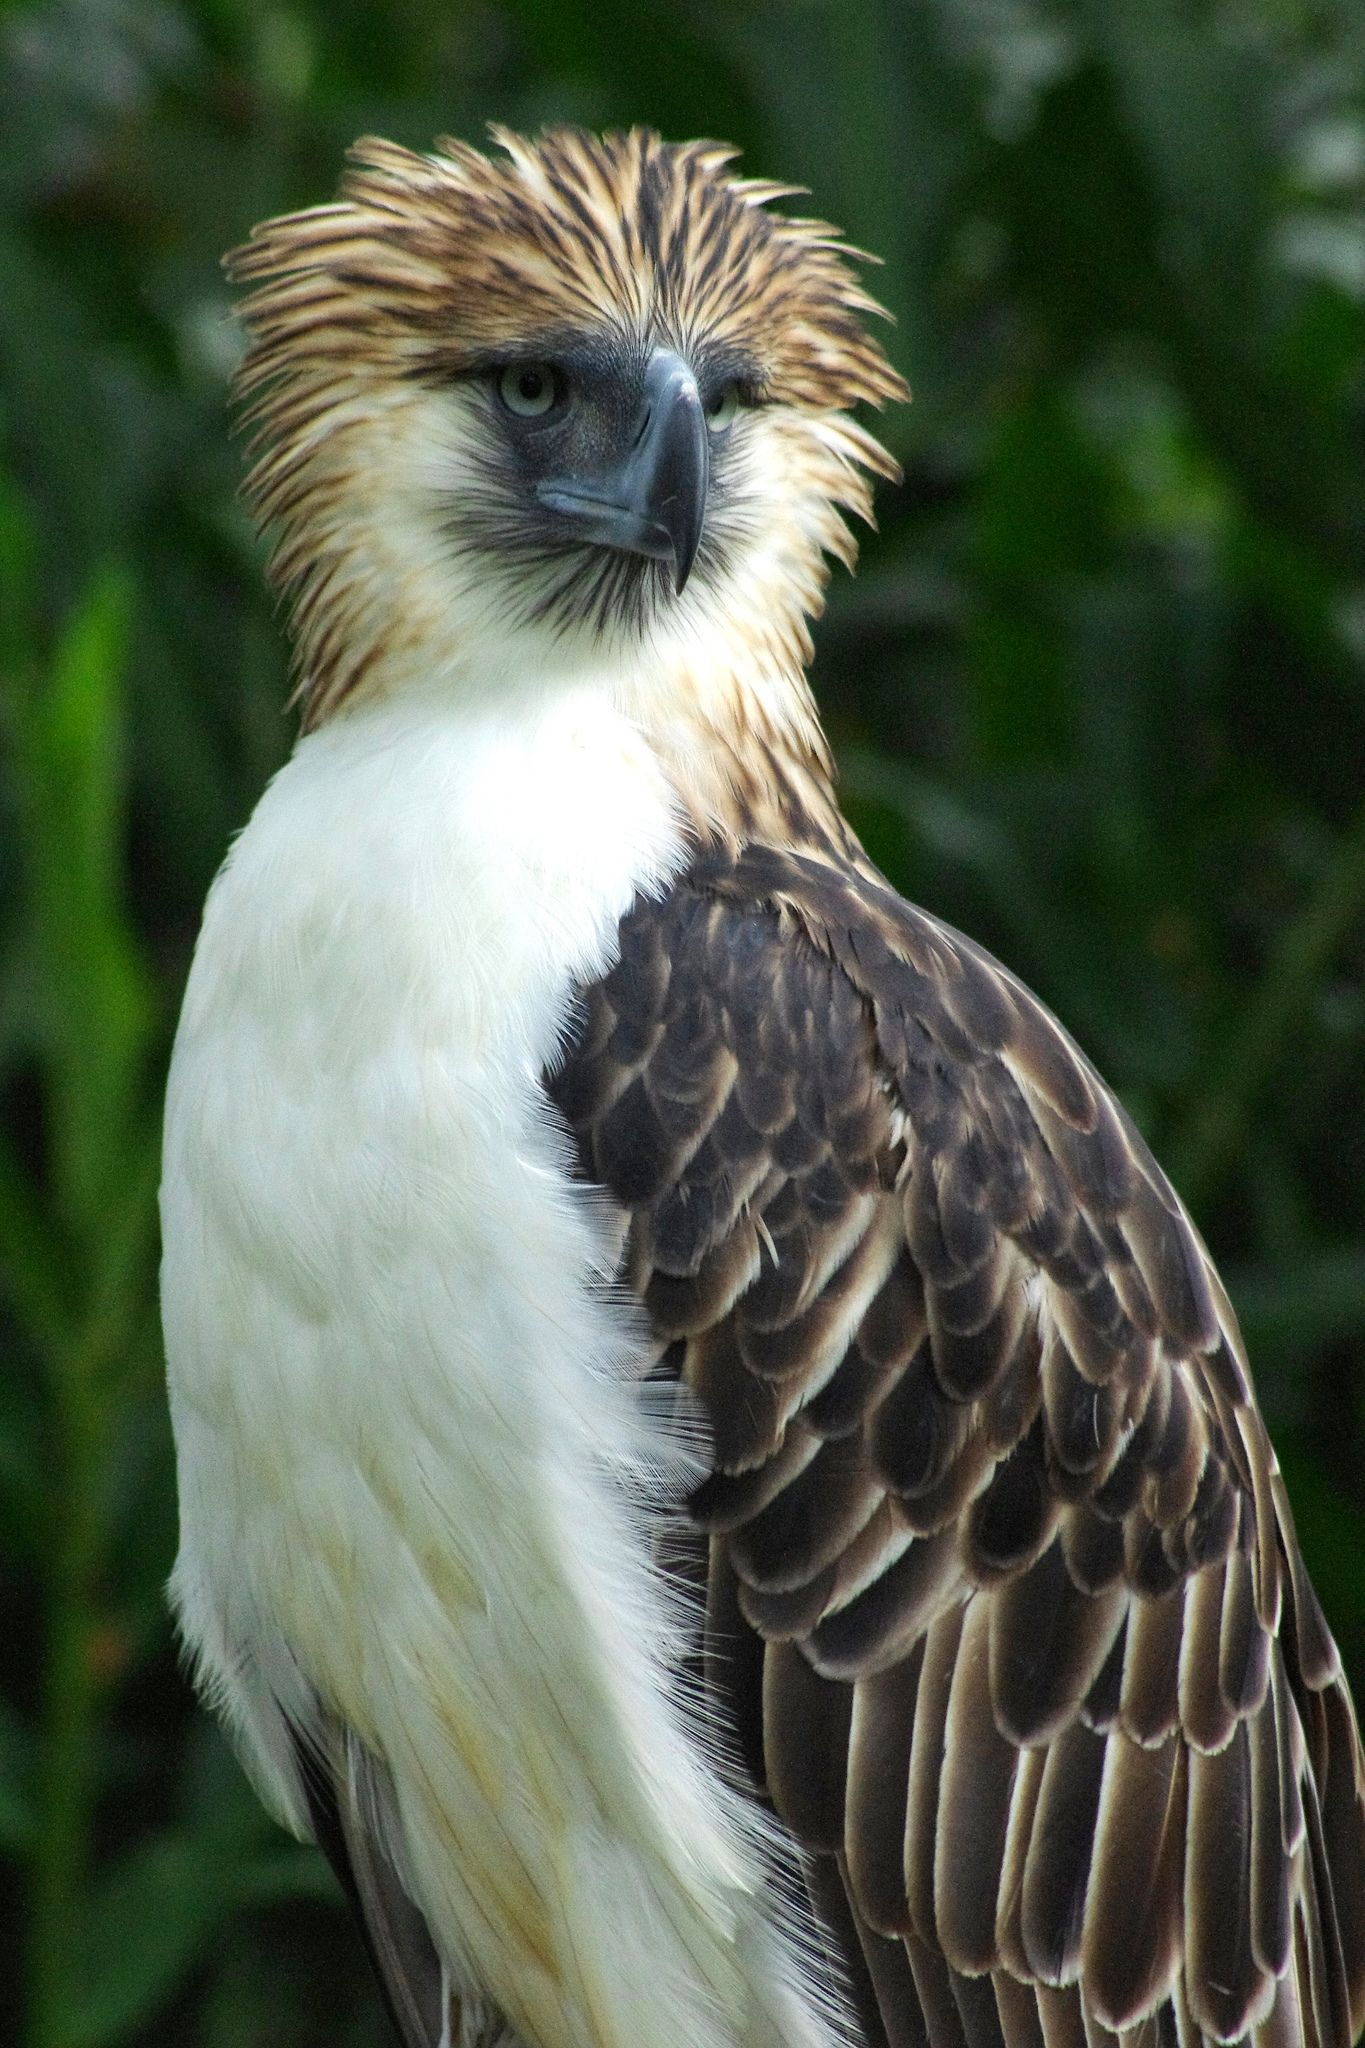 philippine eagle Philippine eagle, Birds, Rare birds